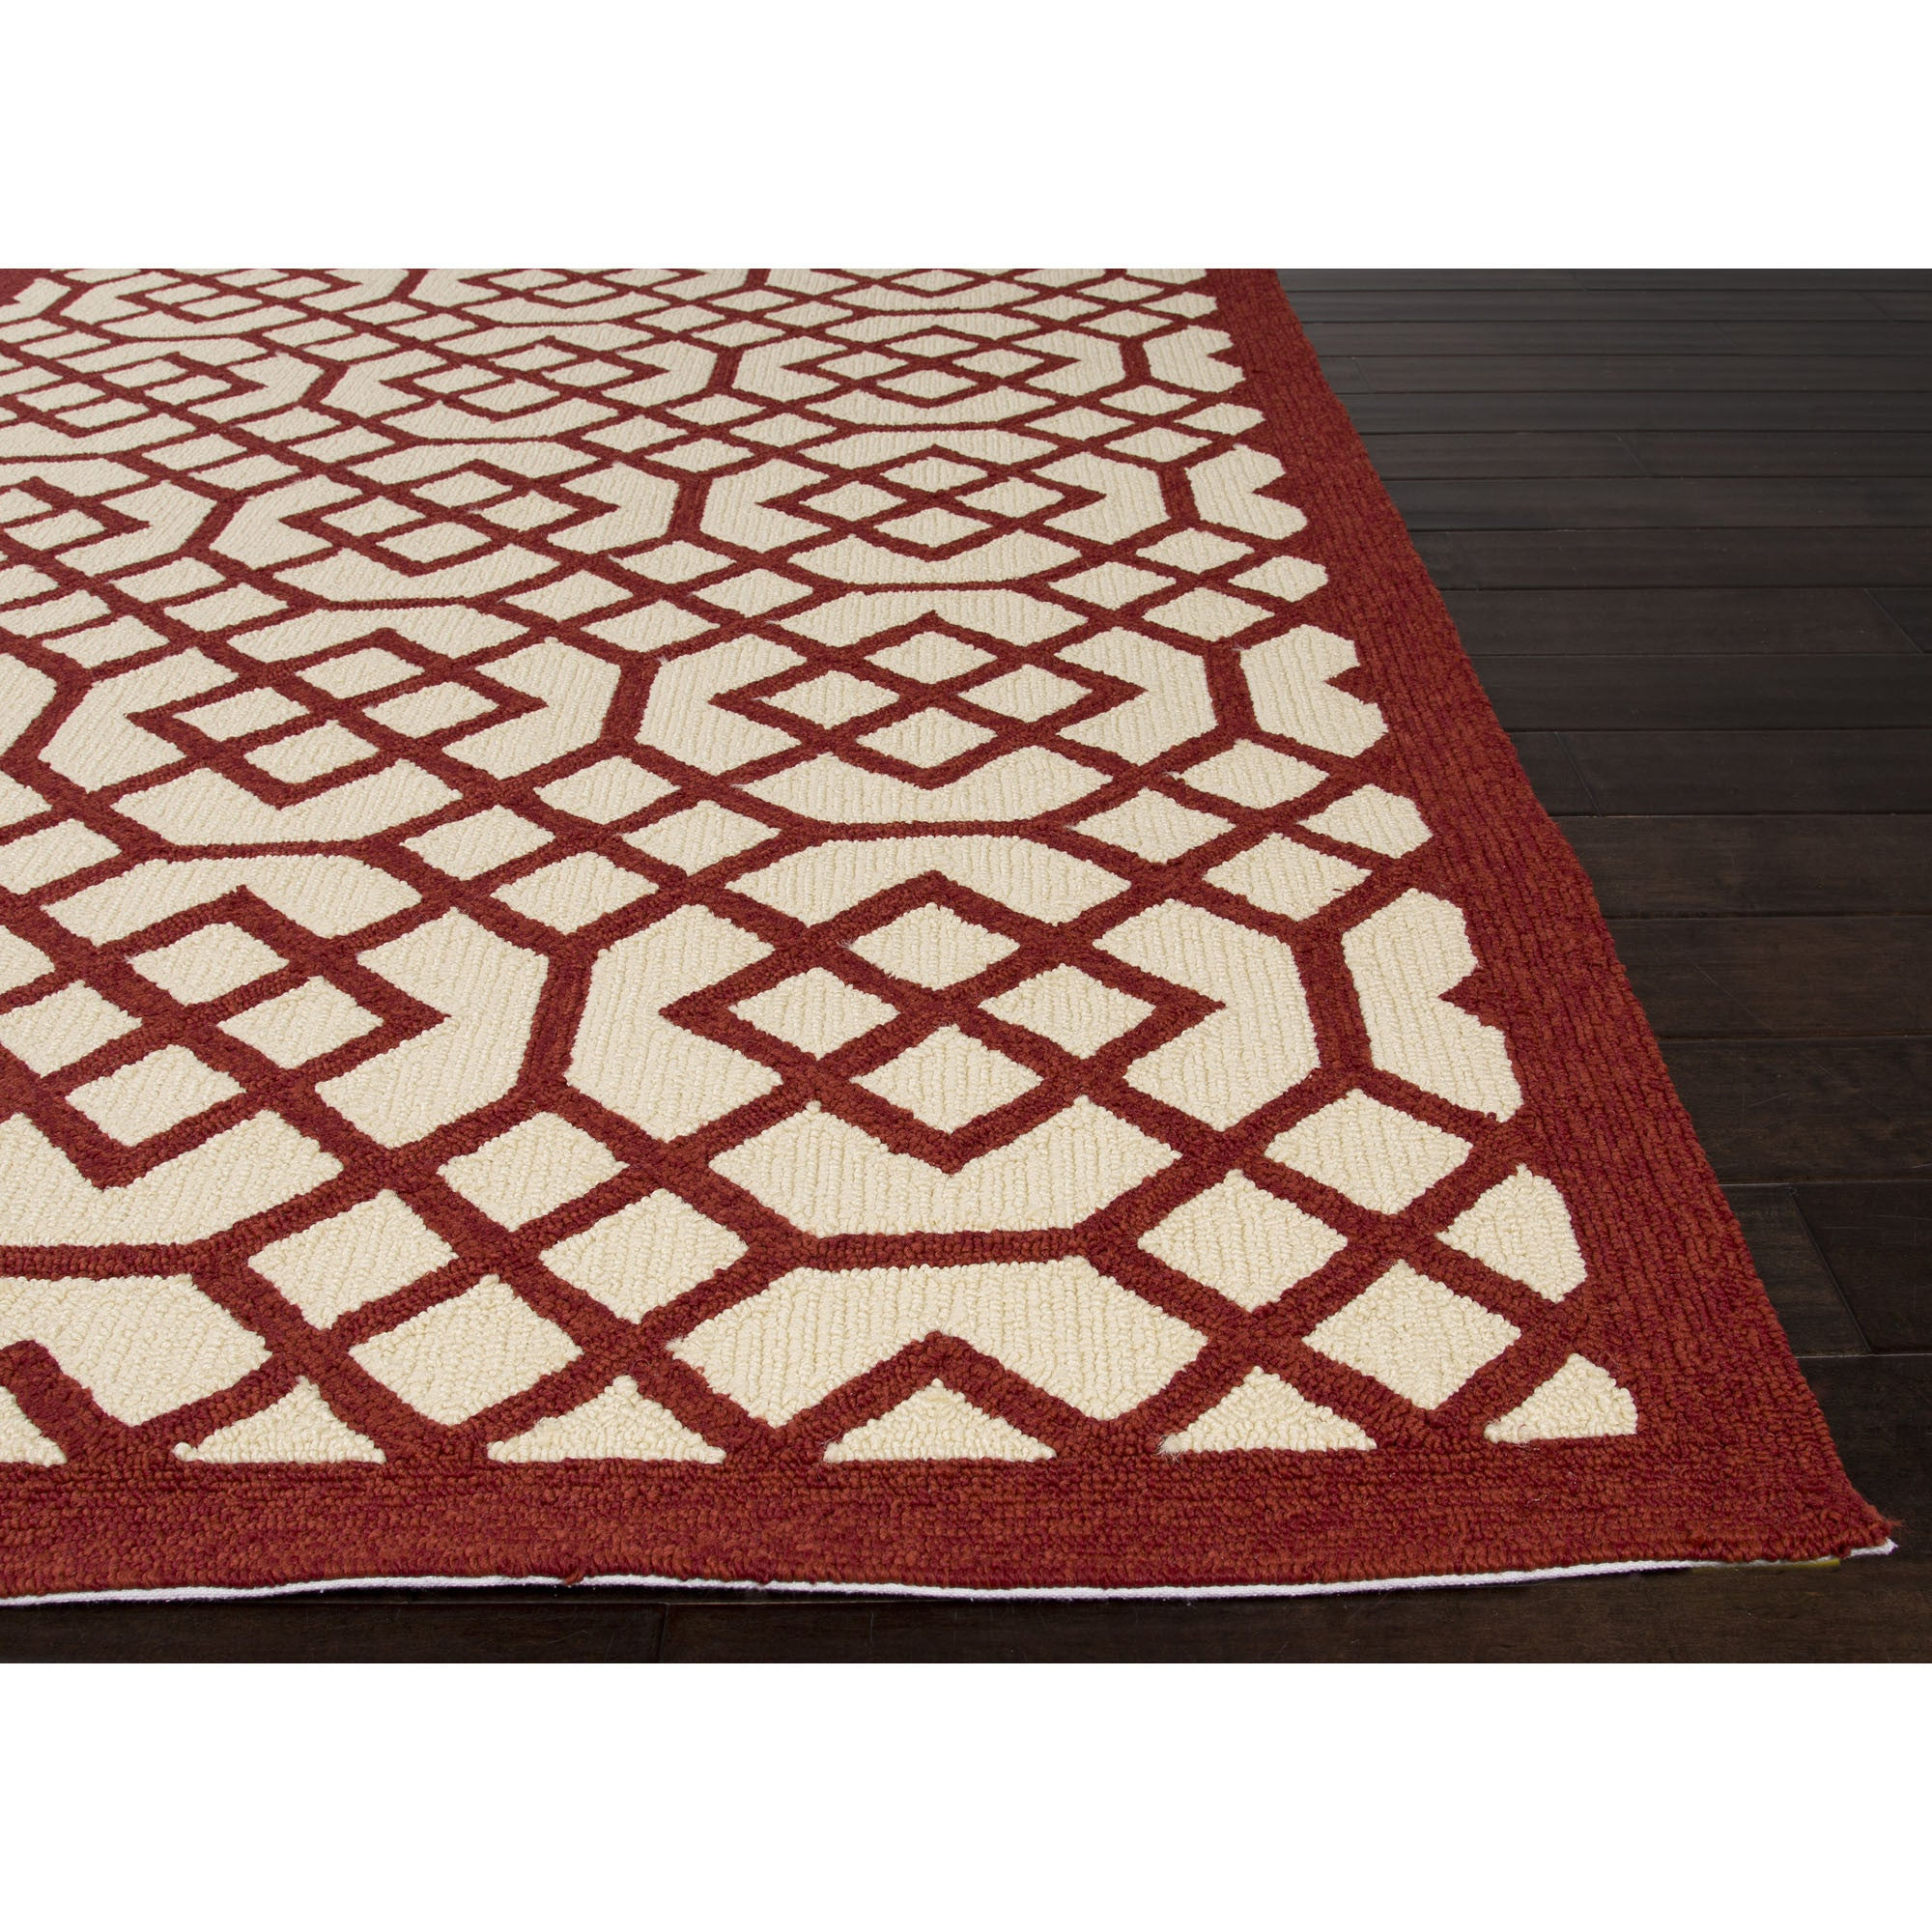 Jaipur Rugs IndoorOutdoor Geometric Pattern Red/Ivory Polypropylene Area Rug BA40 (Rectangle)